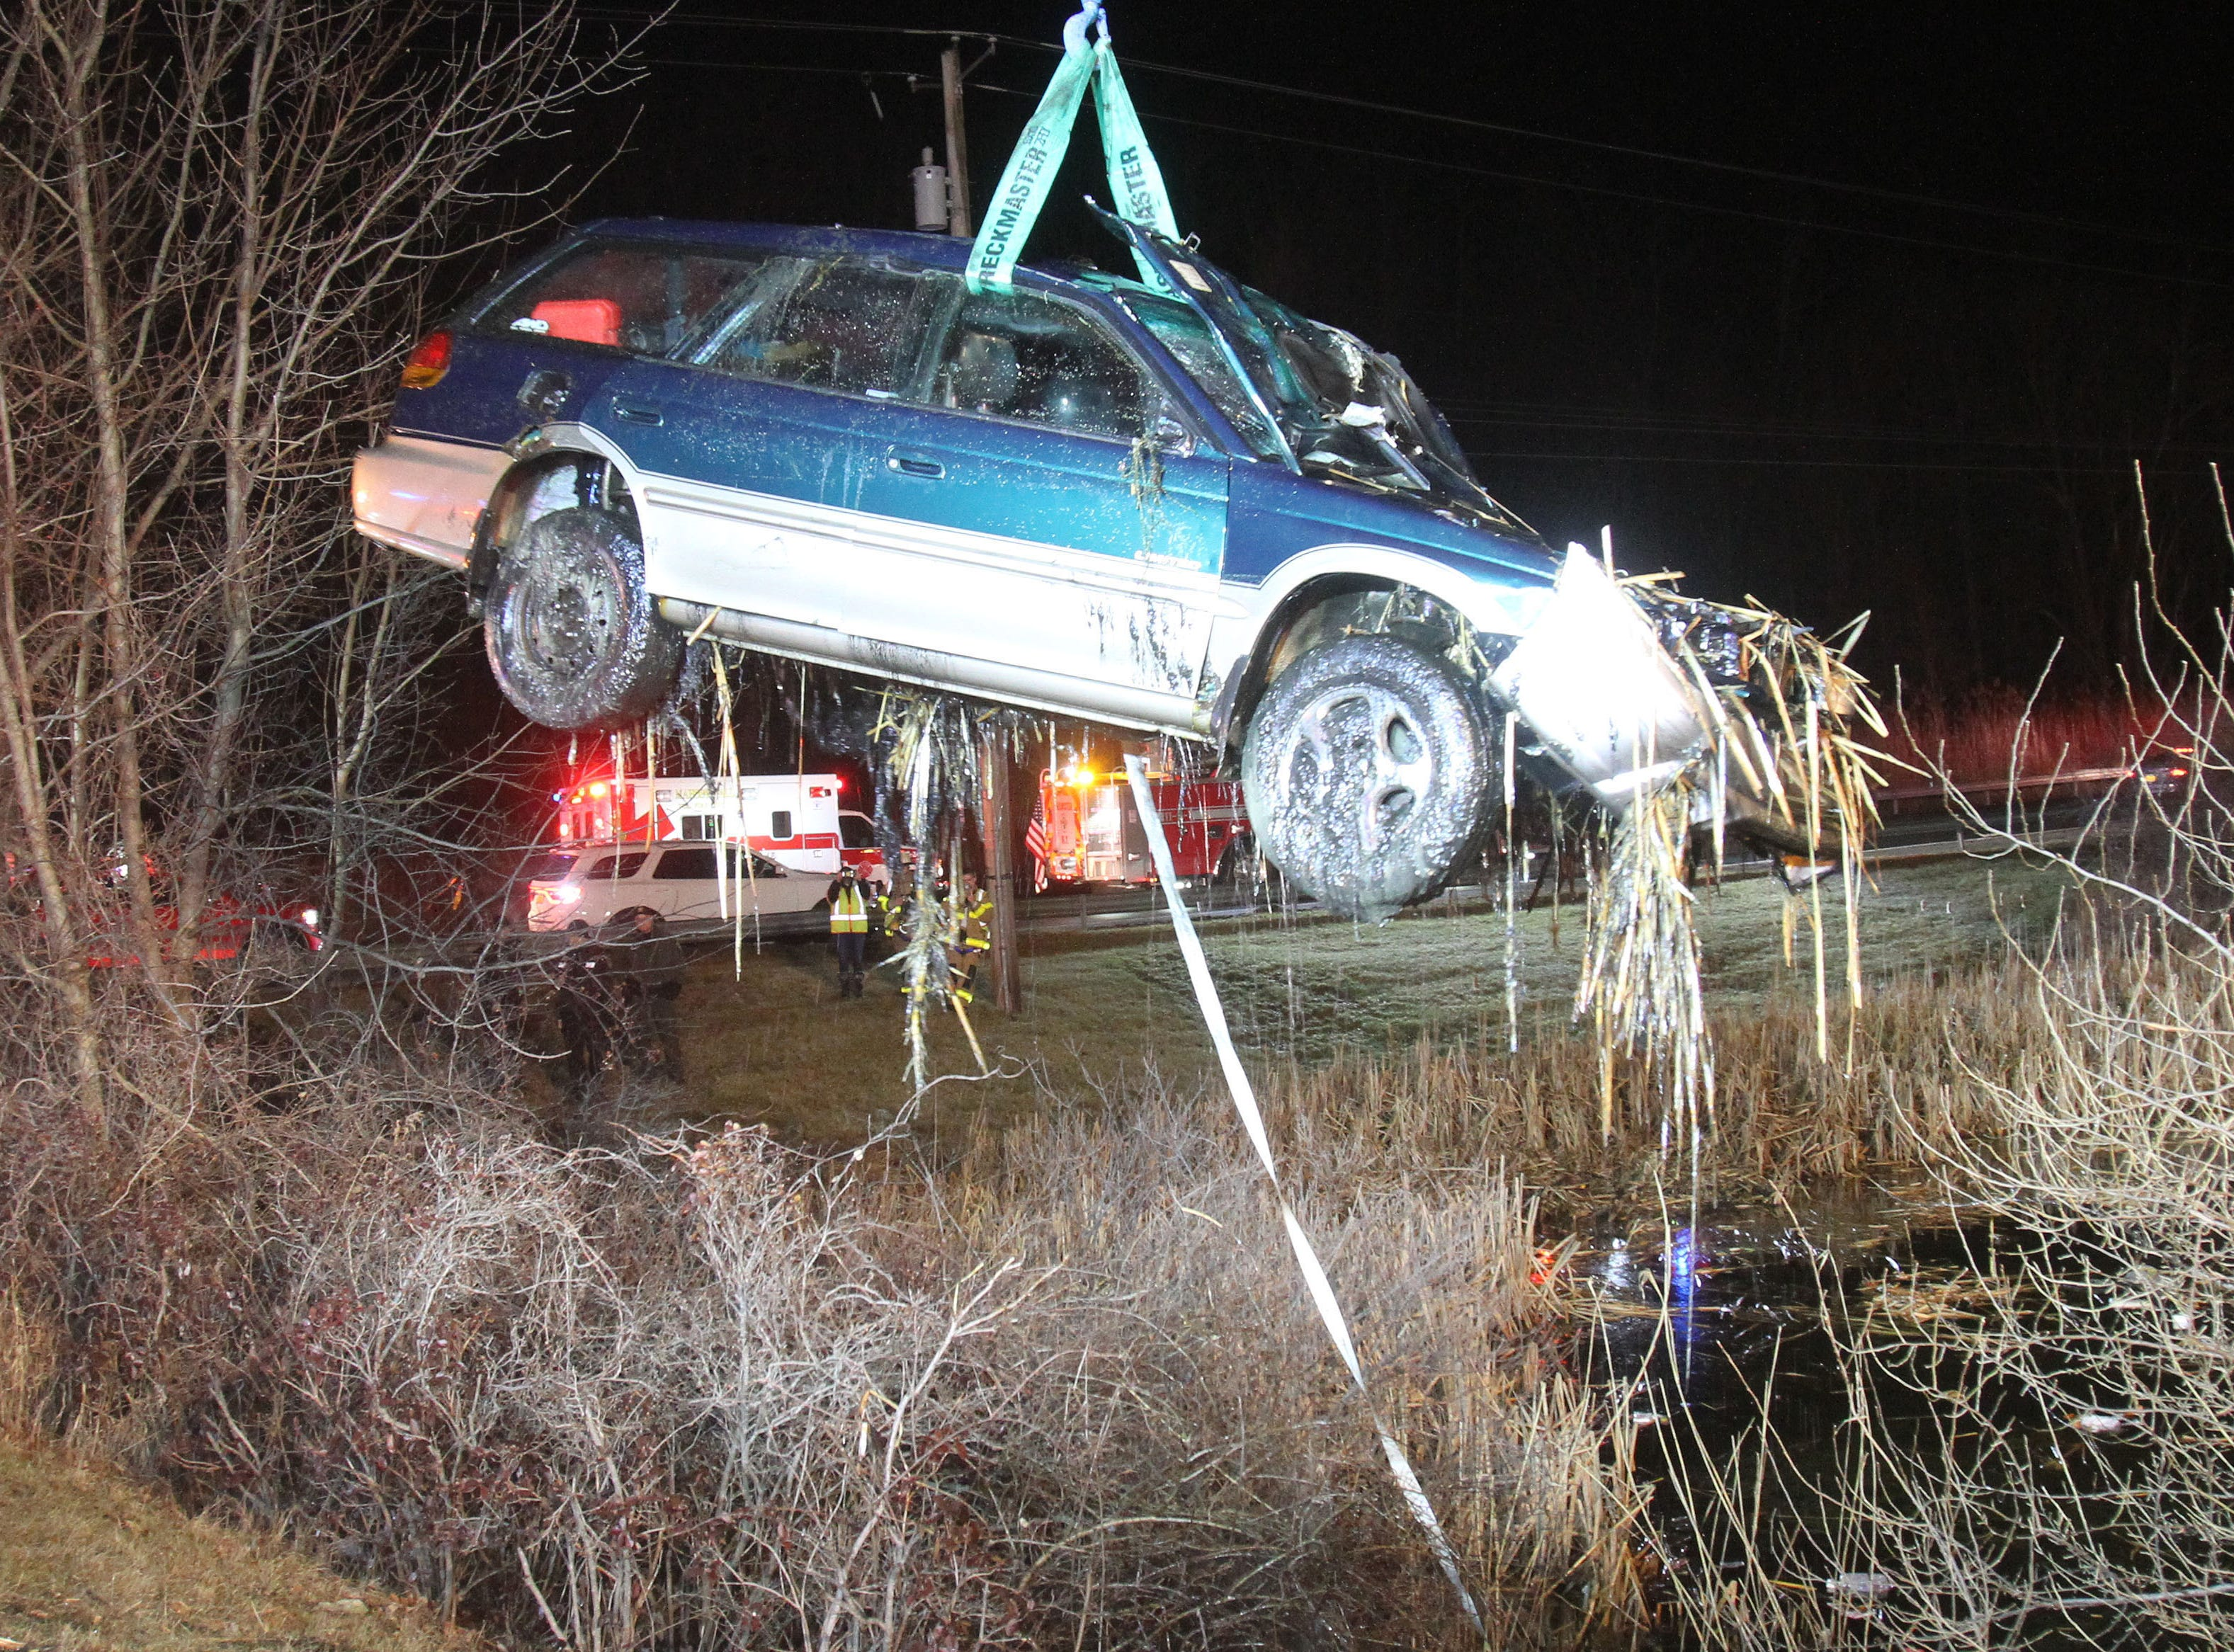 A crew from Lisi's Towing and Recovery lifts a Subaru wagon out of a pond at the intersection of Route 22 and Doansburg Road in the town of Southeast  early Friday morning Feb. 22, 2018. The driver was transported to Danbury Hospital with minor injuries.